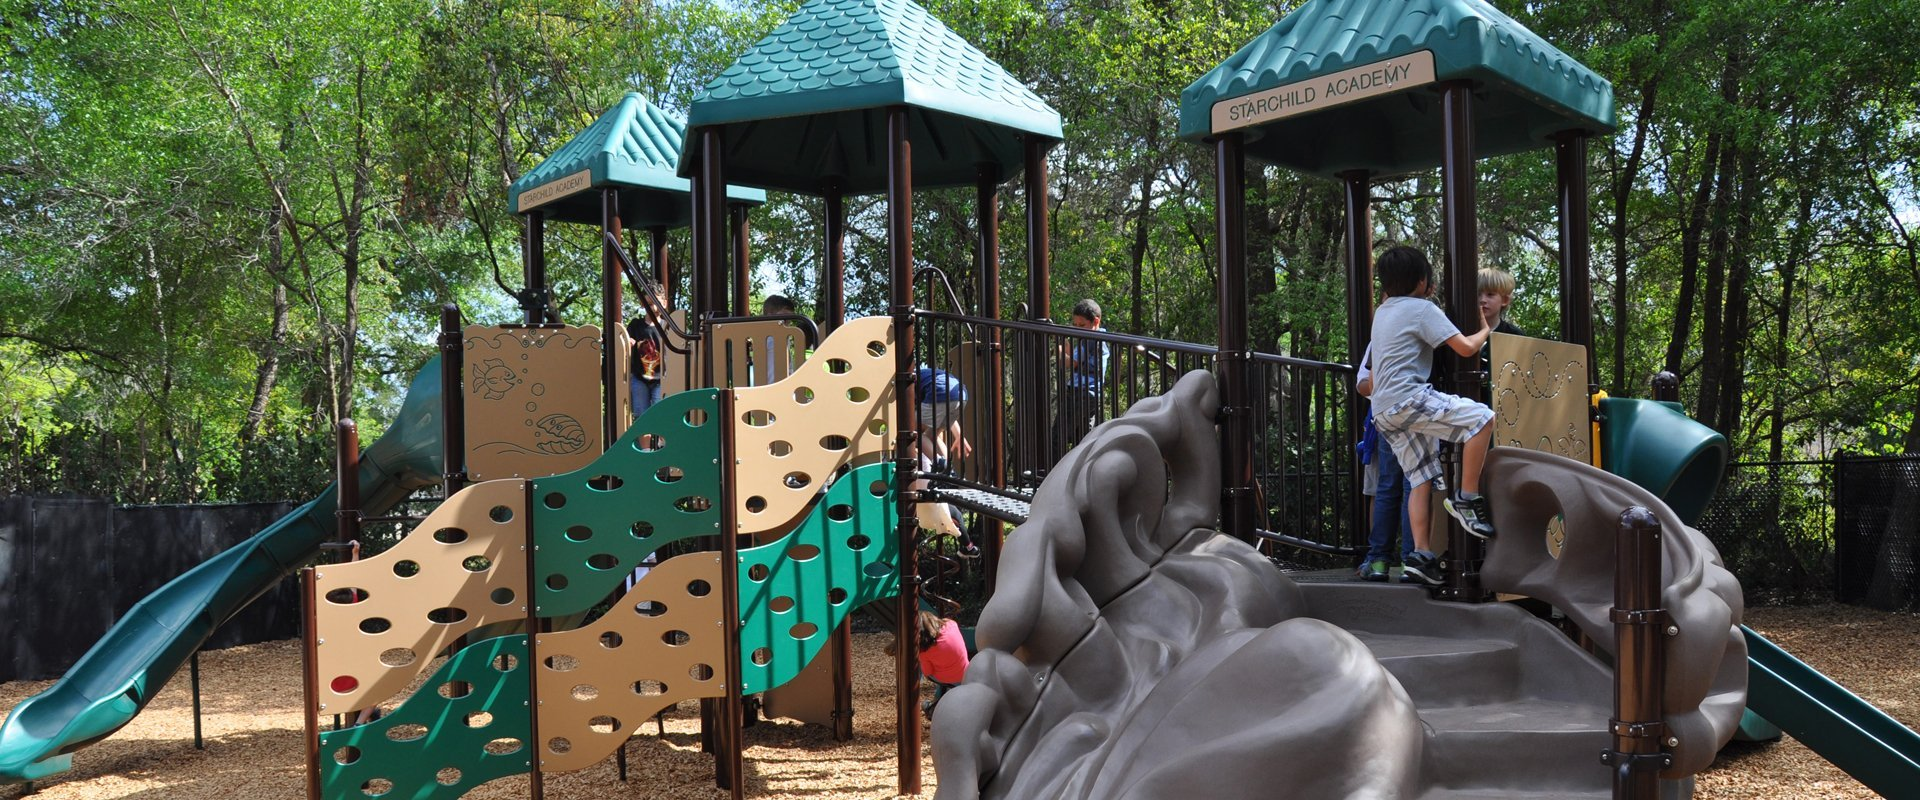 Child Daycare, Preschool, After-School, Summer Camp & Private Elementary School Programs